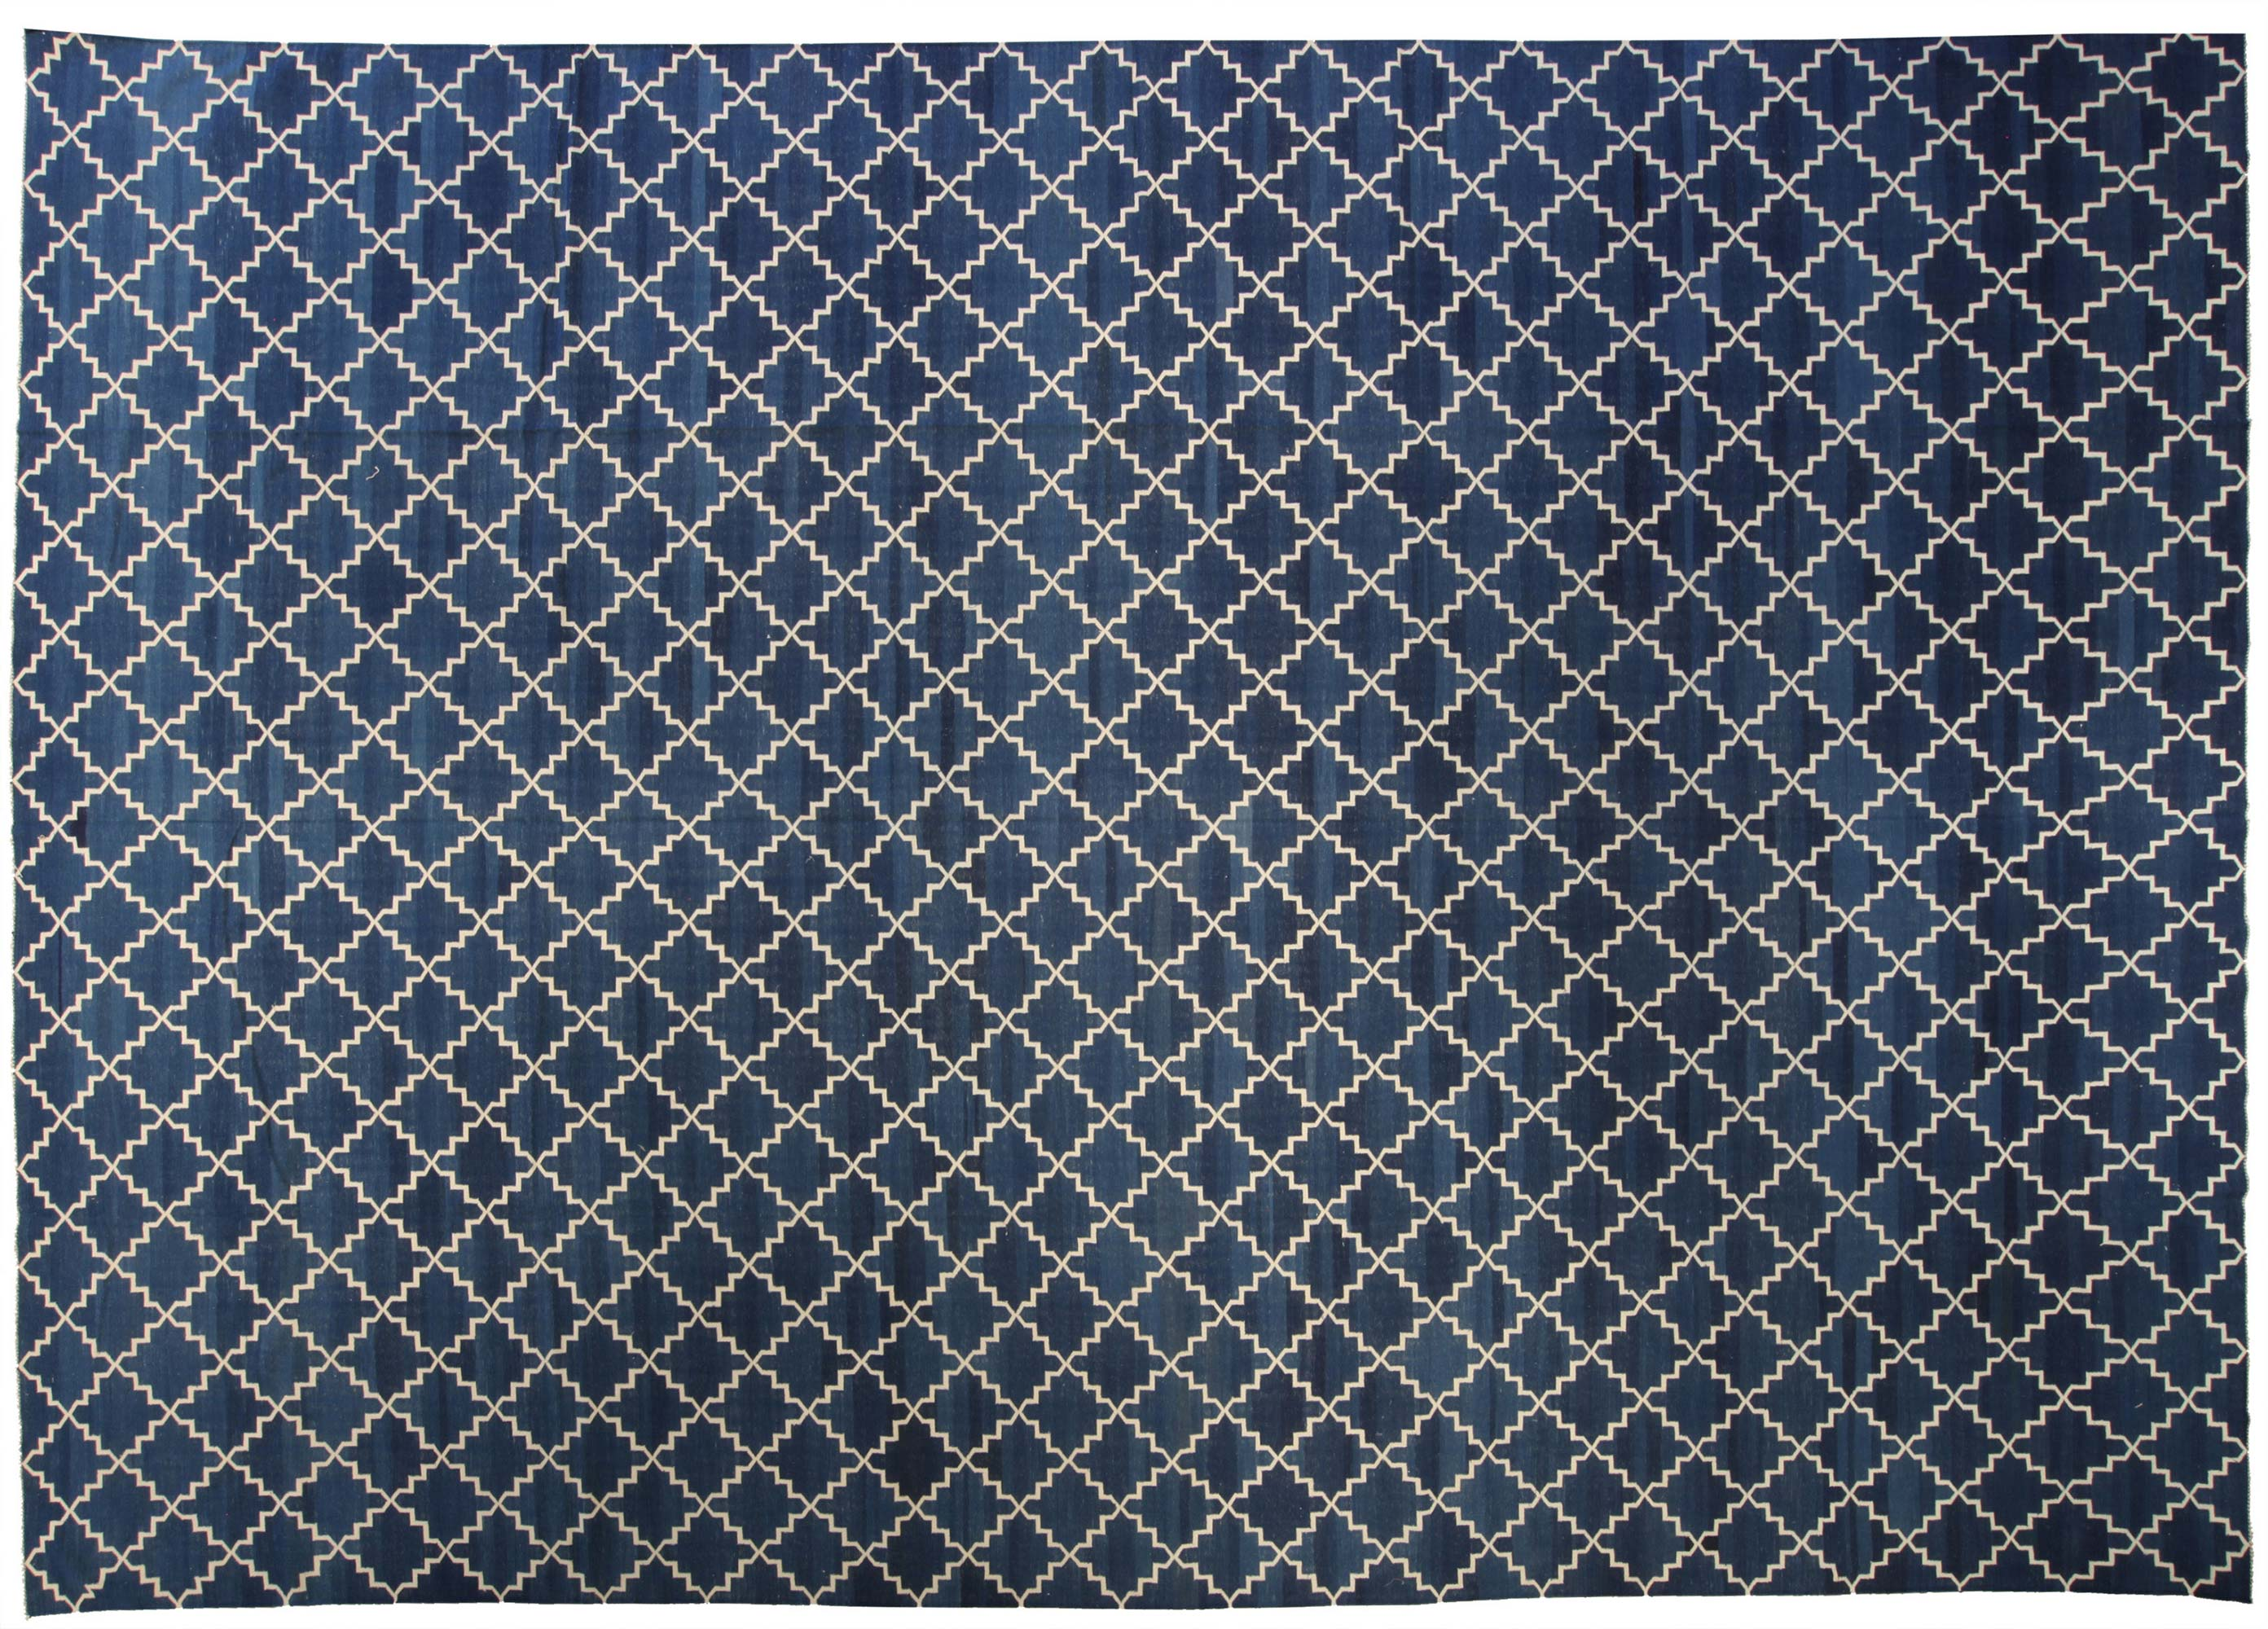 Picture of: Contemporary Dhurrie Deep Blue And White Handwoven Cotton Rug N10389 By Dlb